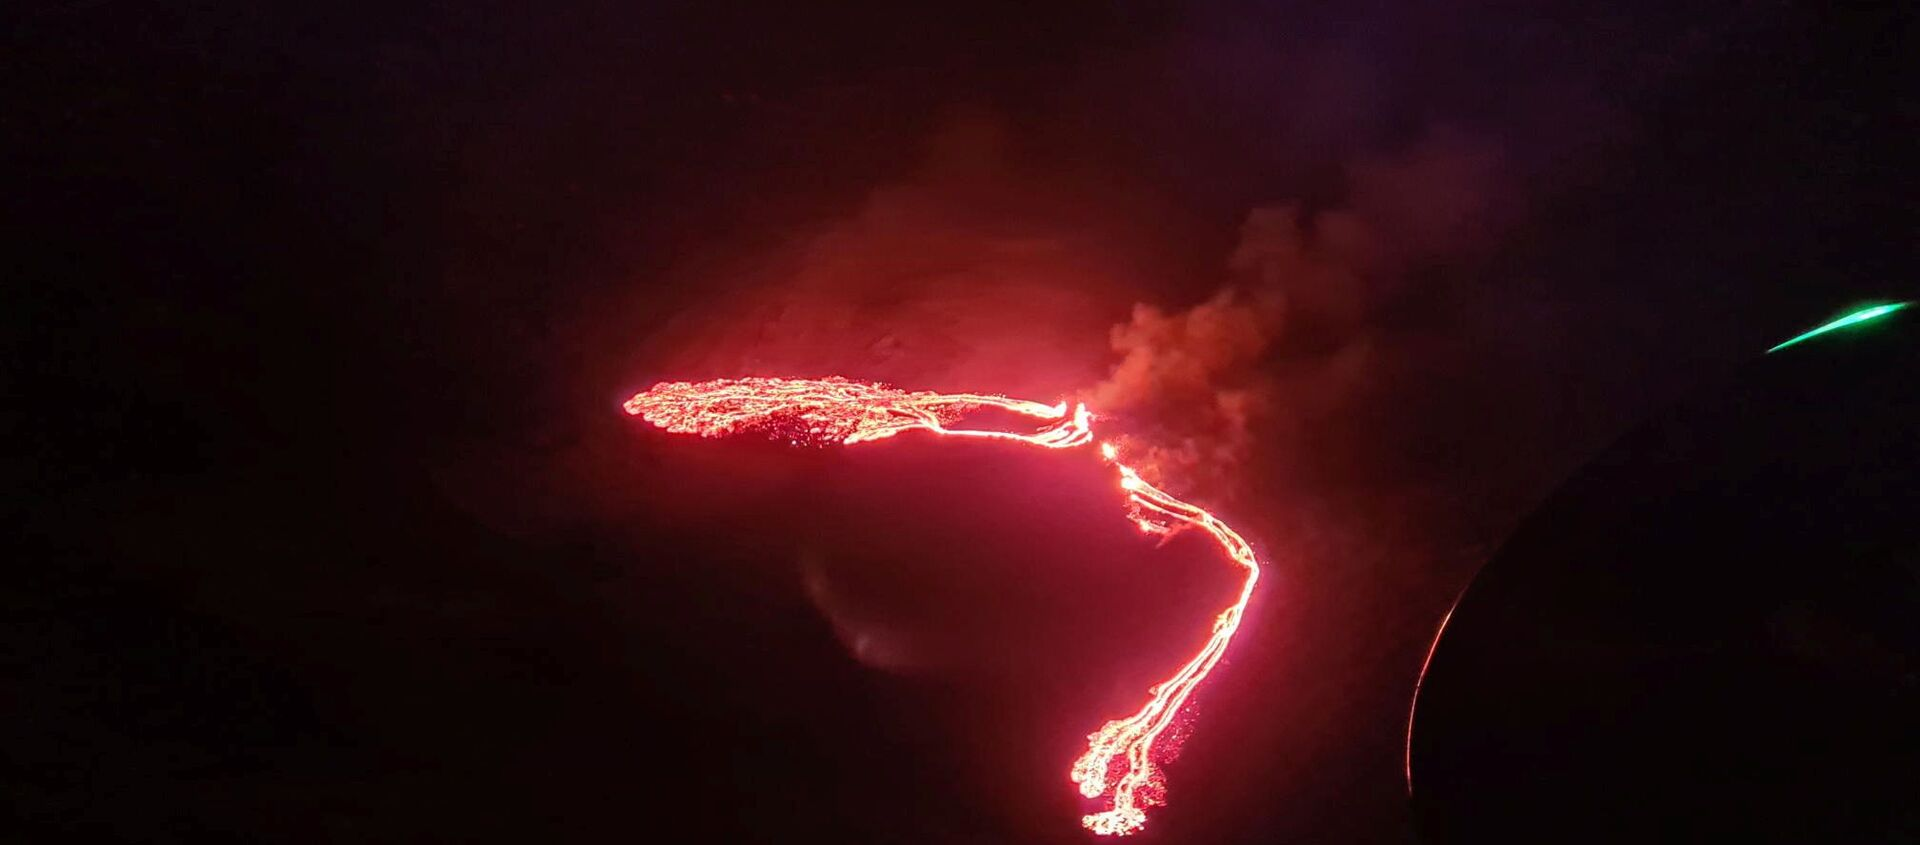 Lava streams are seen during a volcanic eruption in Fagradalsfjall, Reykjanes, Iceland, March 19, 2021 in this still image taken from social media. - Sputnik Italia, 1920, 20.03.2021